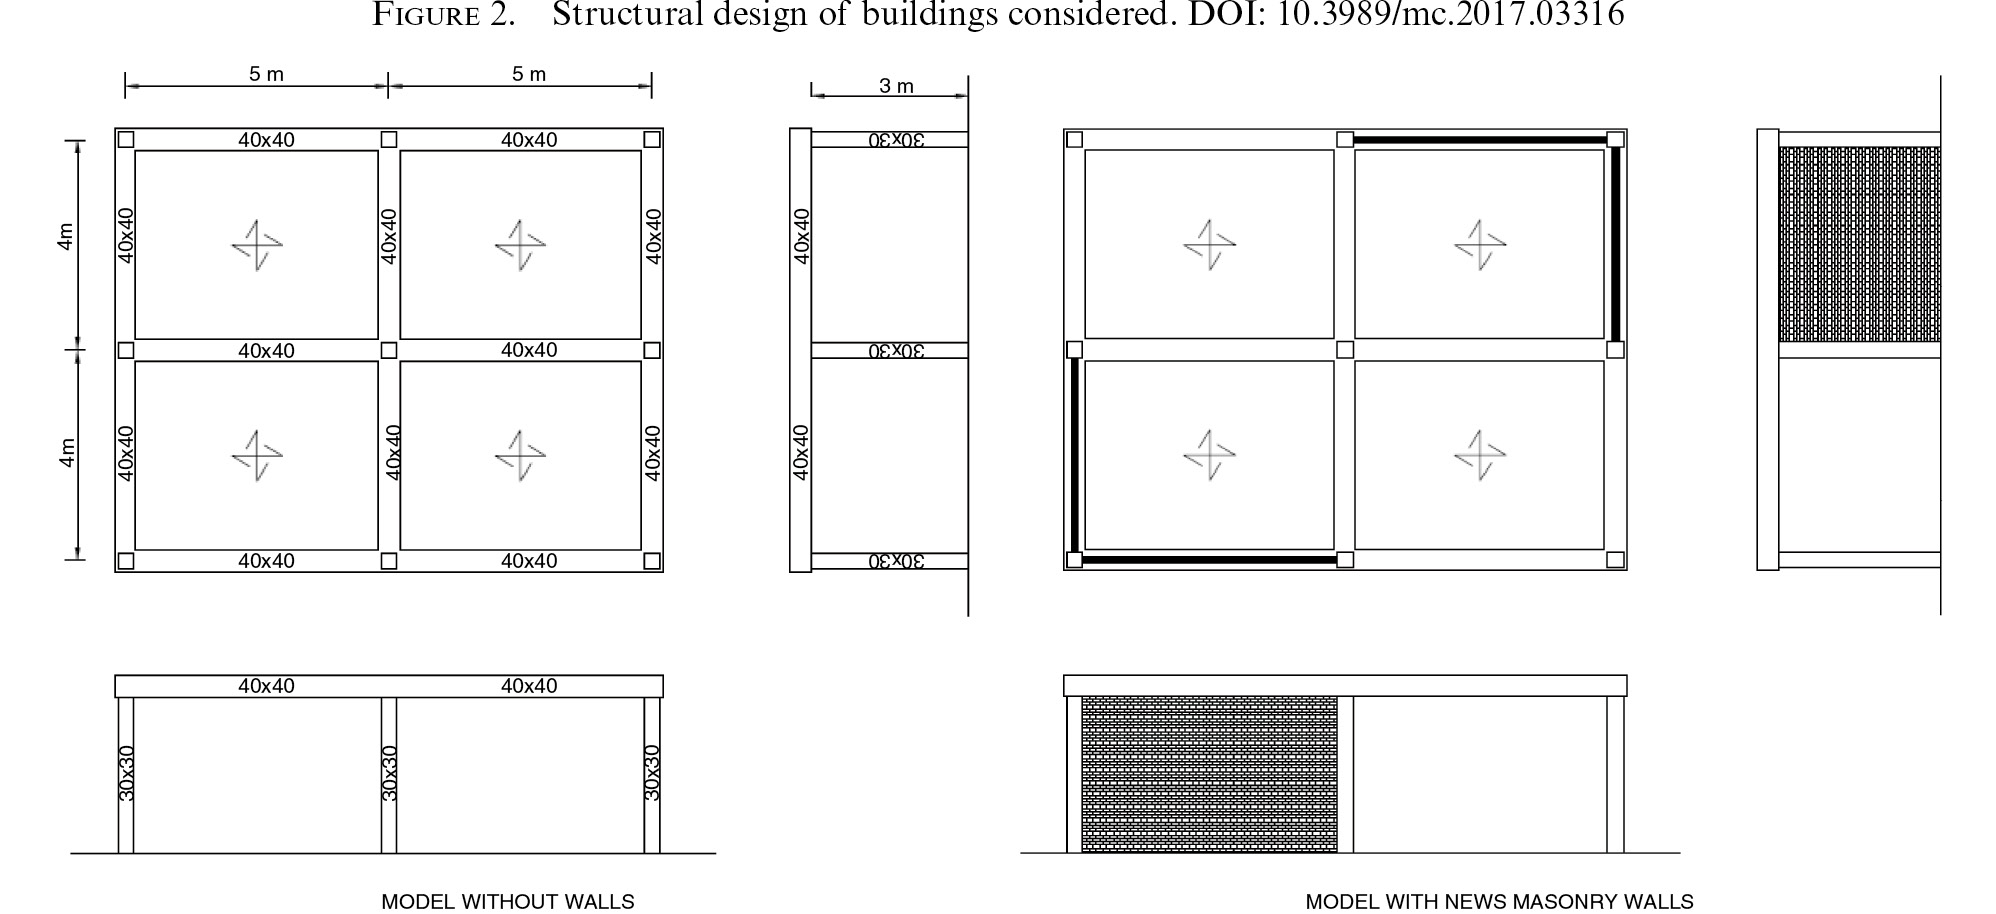 Impact of using lightweight eco-bricks as enclosures for individual